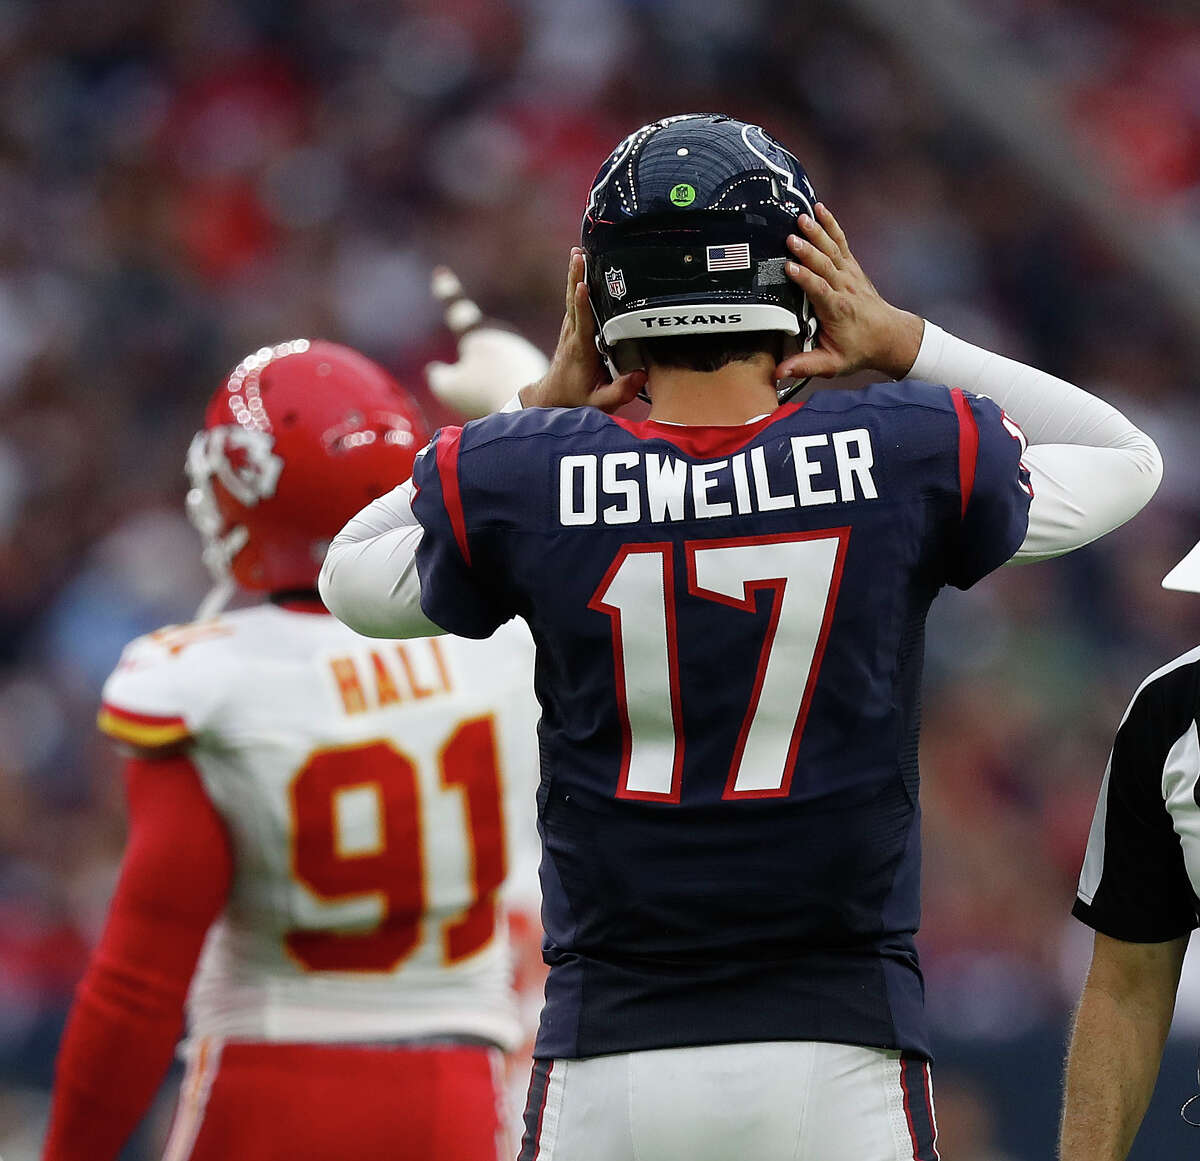 Houston Texans quarterback Brock Osweiler (17) listens to a coach during the fourth quarter of an NFL football game at NRG Stadium, Sunday, Sept. 18, 2016 in Houston.